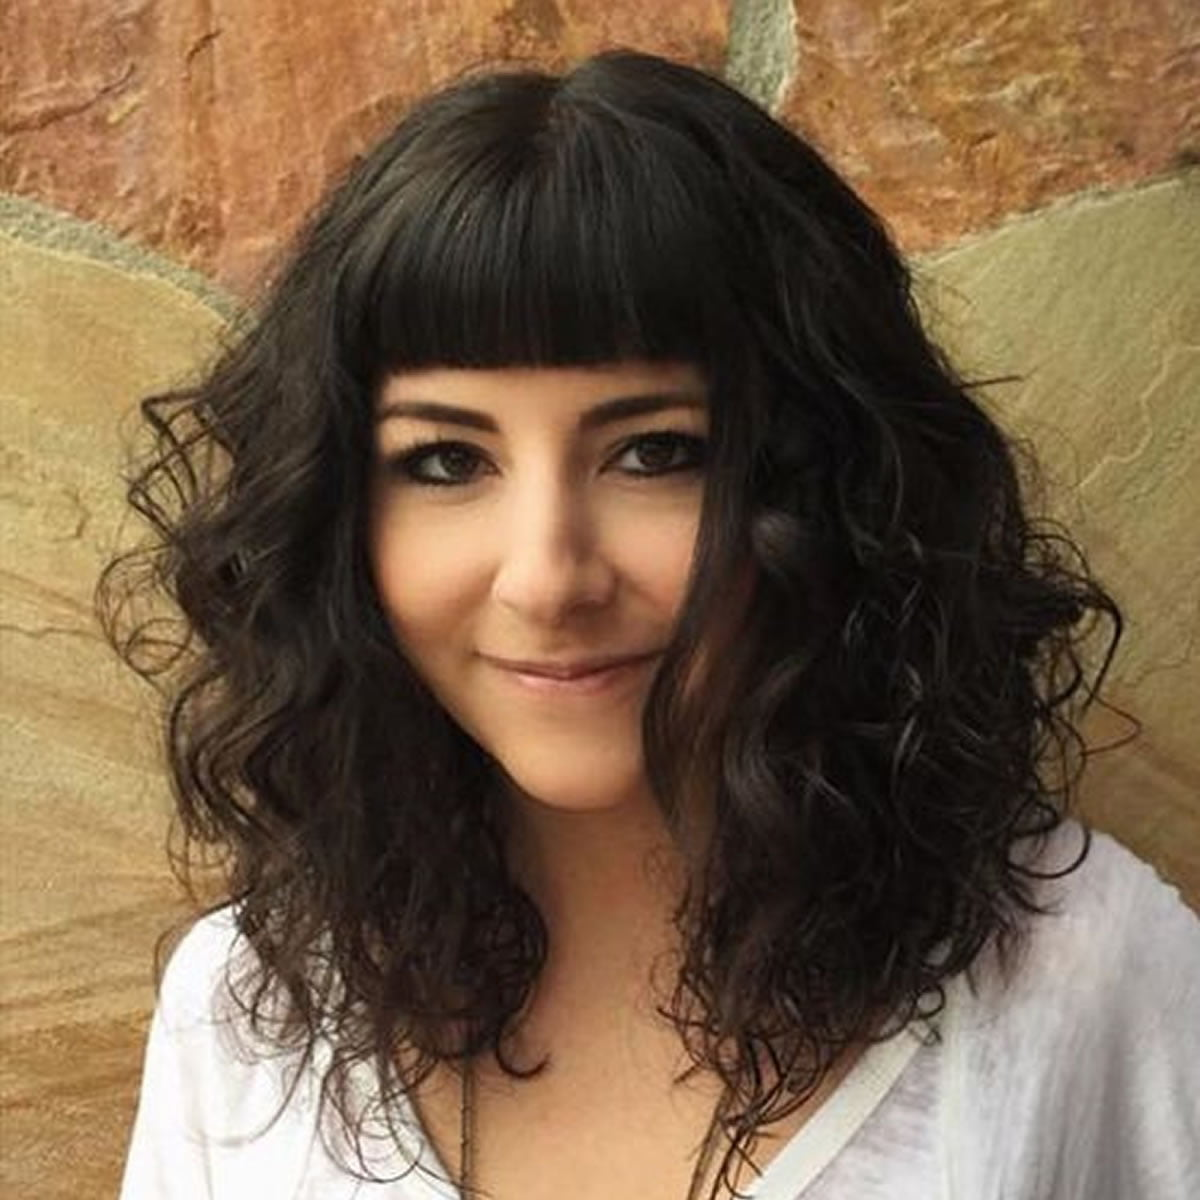 hair cut styles for curly hair curly bob hairstyles for autumn amp winter hair 4191